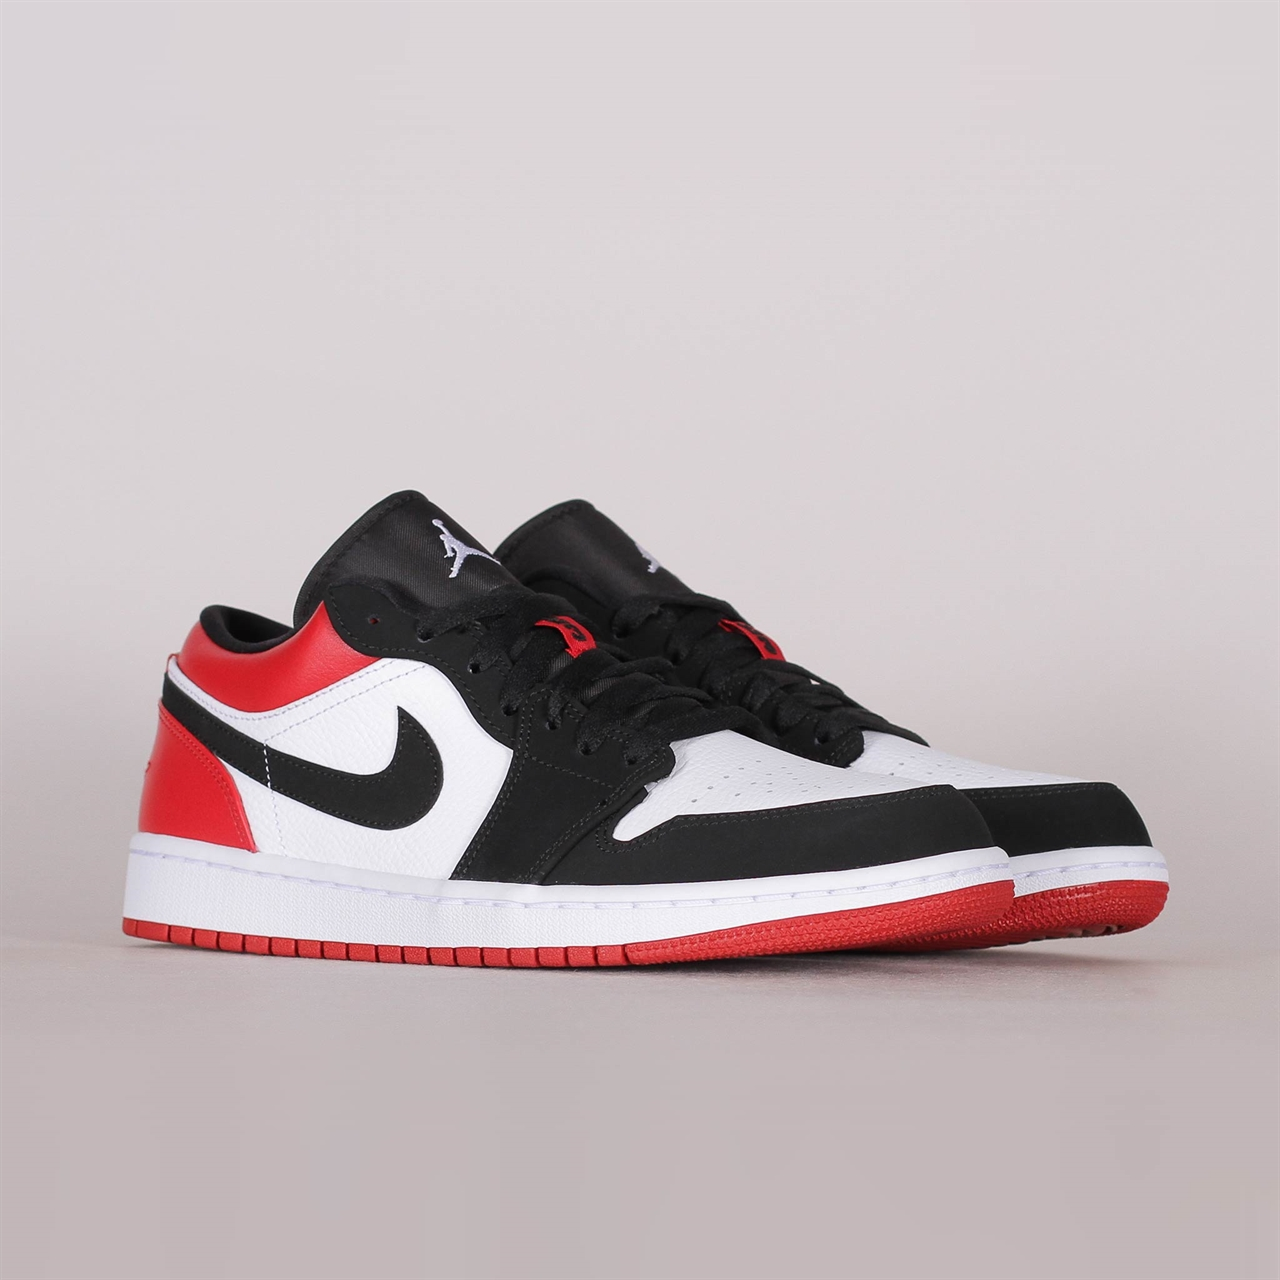 buy popular 73395 f7eb9 Nike Air 1 Low Black Toe (553558-116)